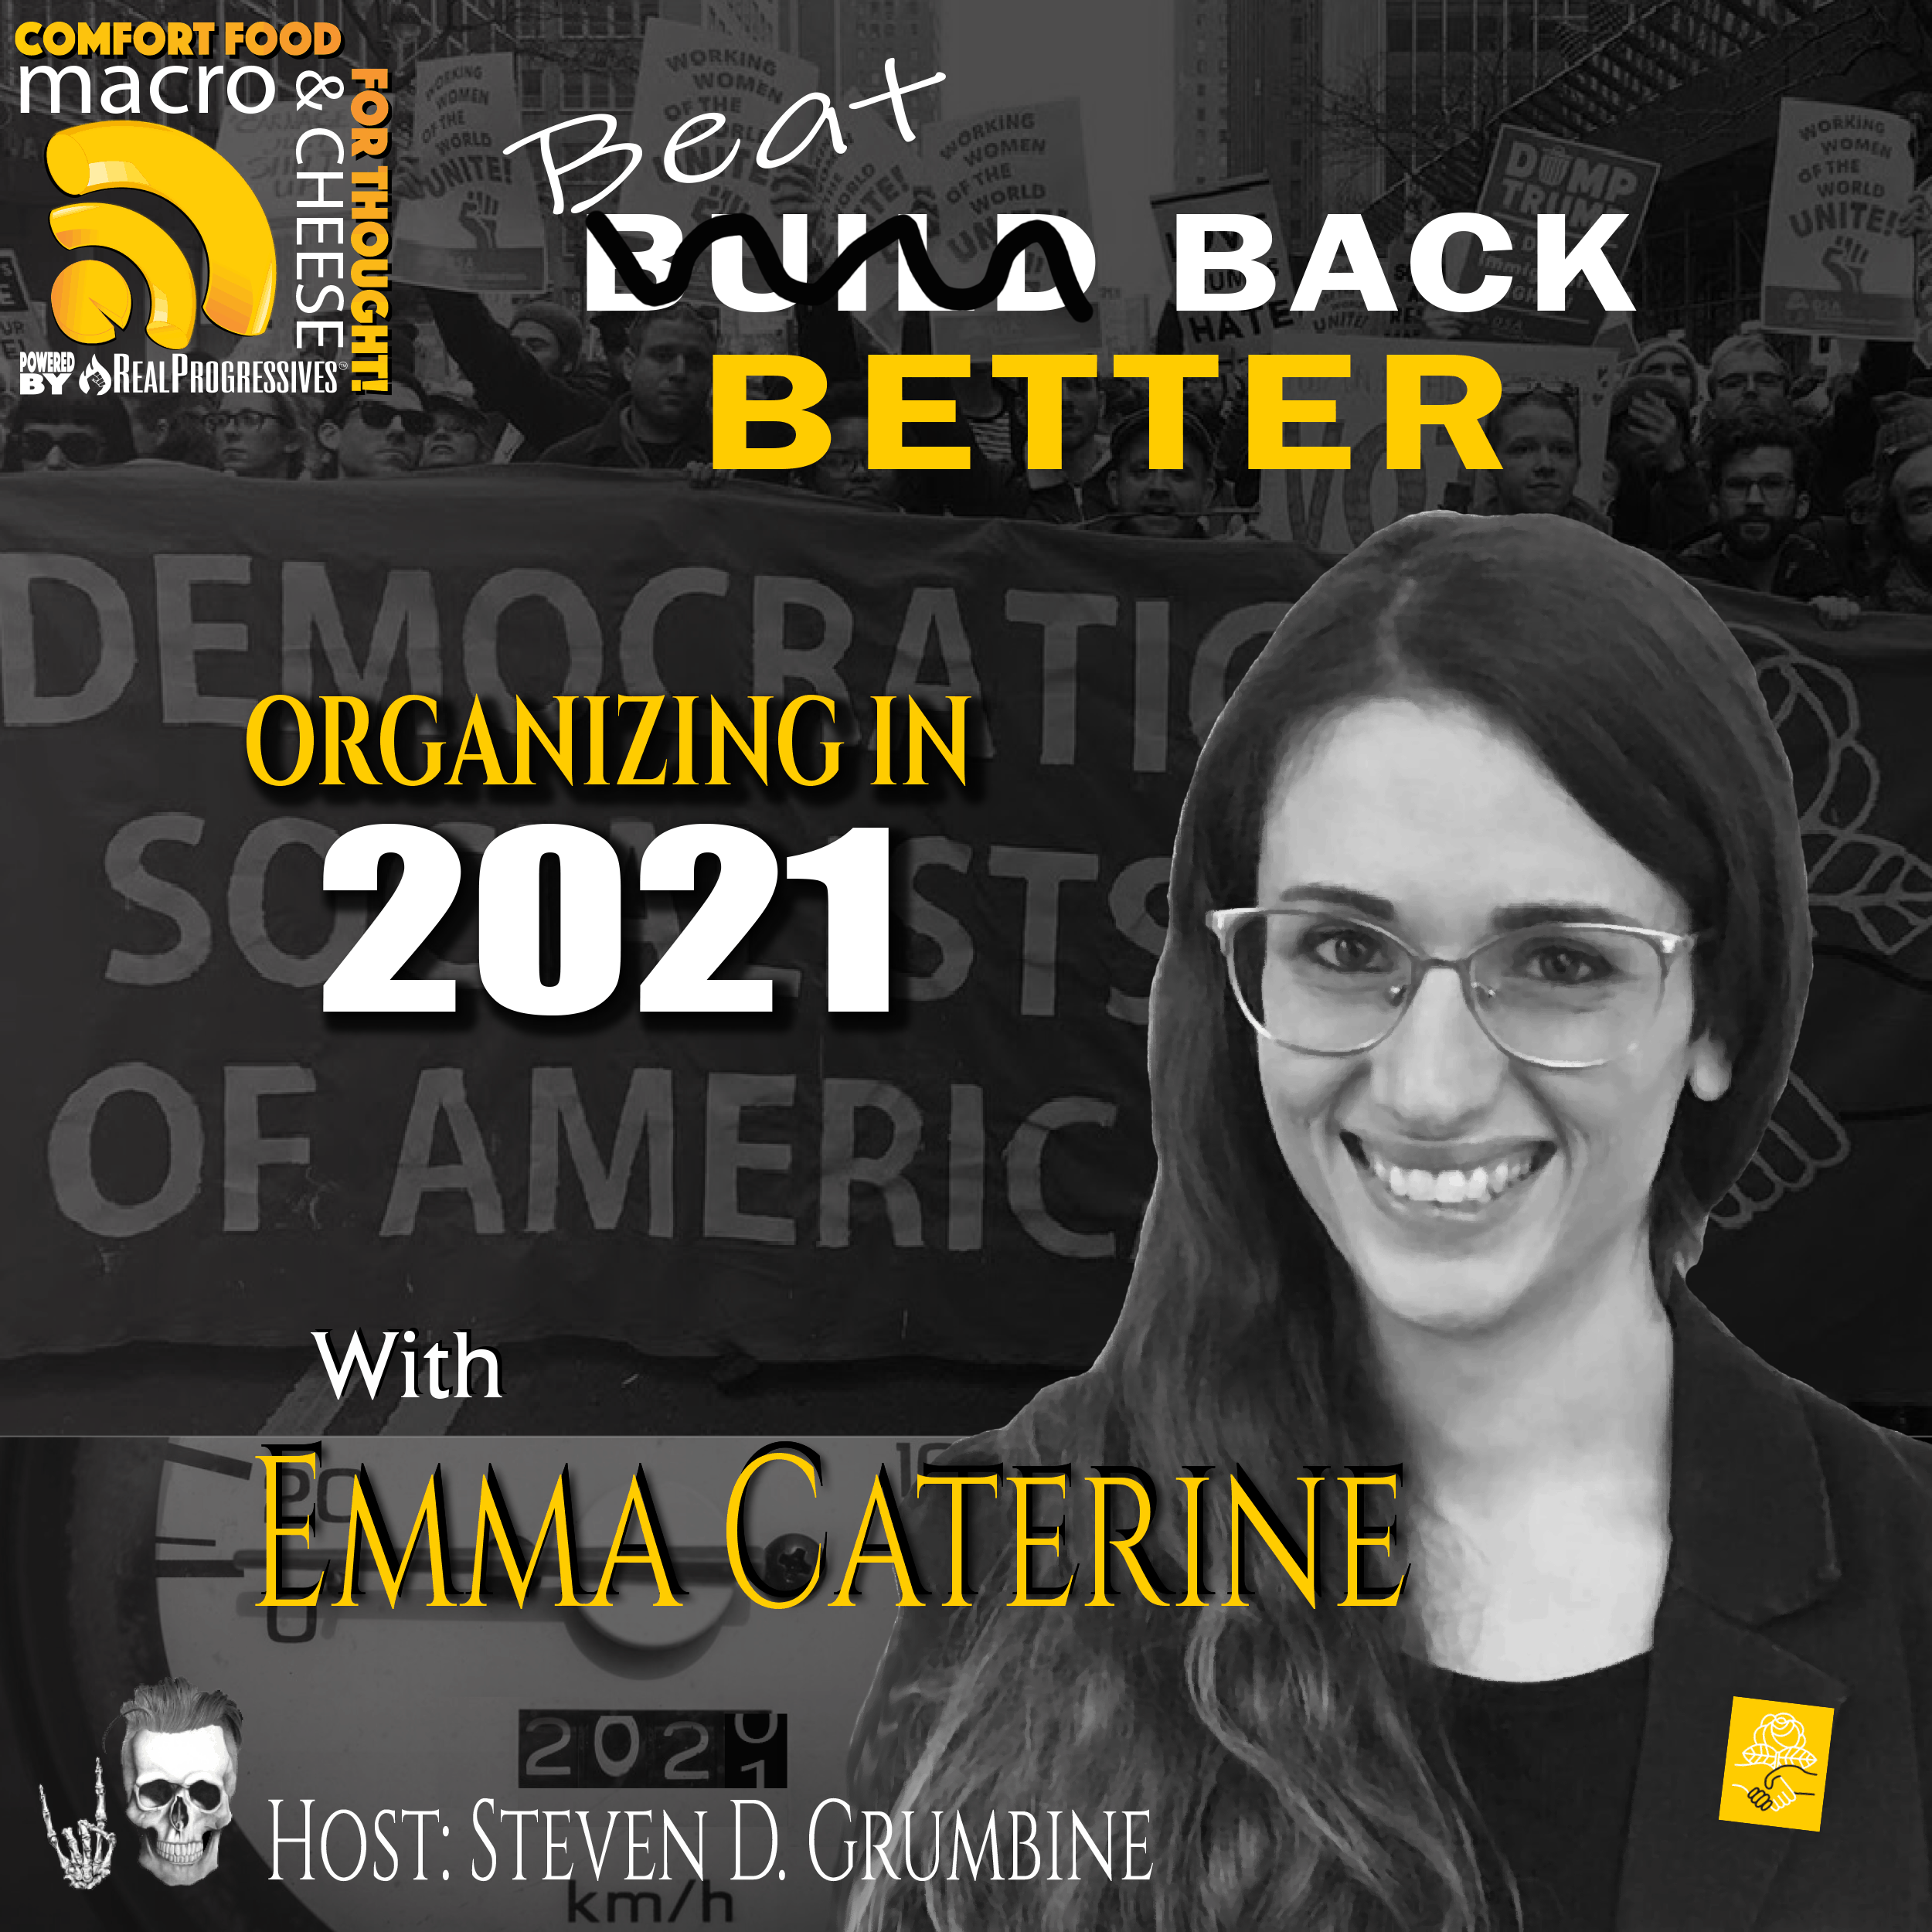 Episode 101 – Beat Back Better: Organizing in 2021 with Emma Caterine